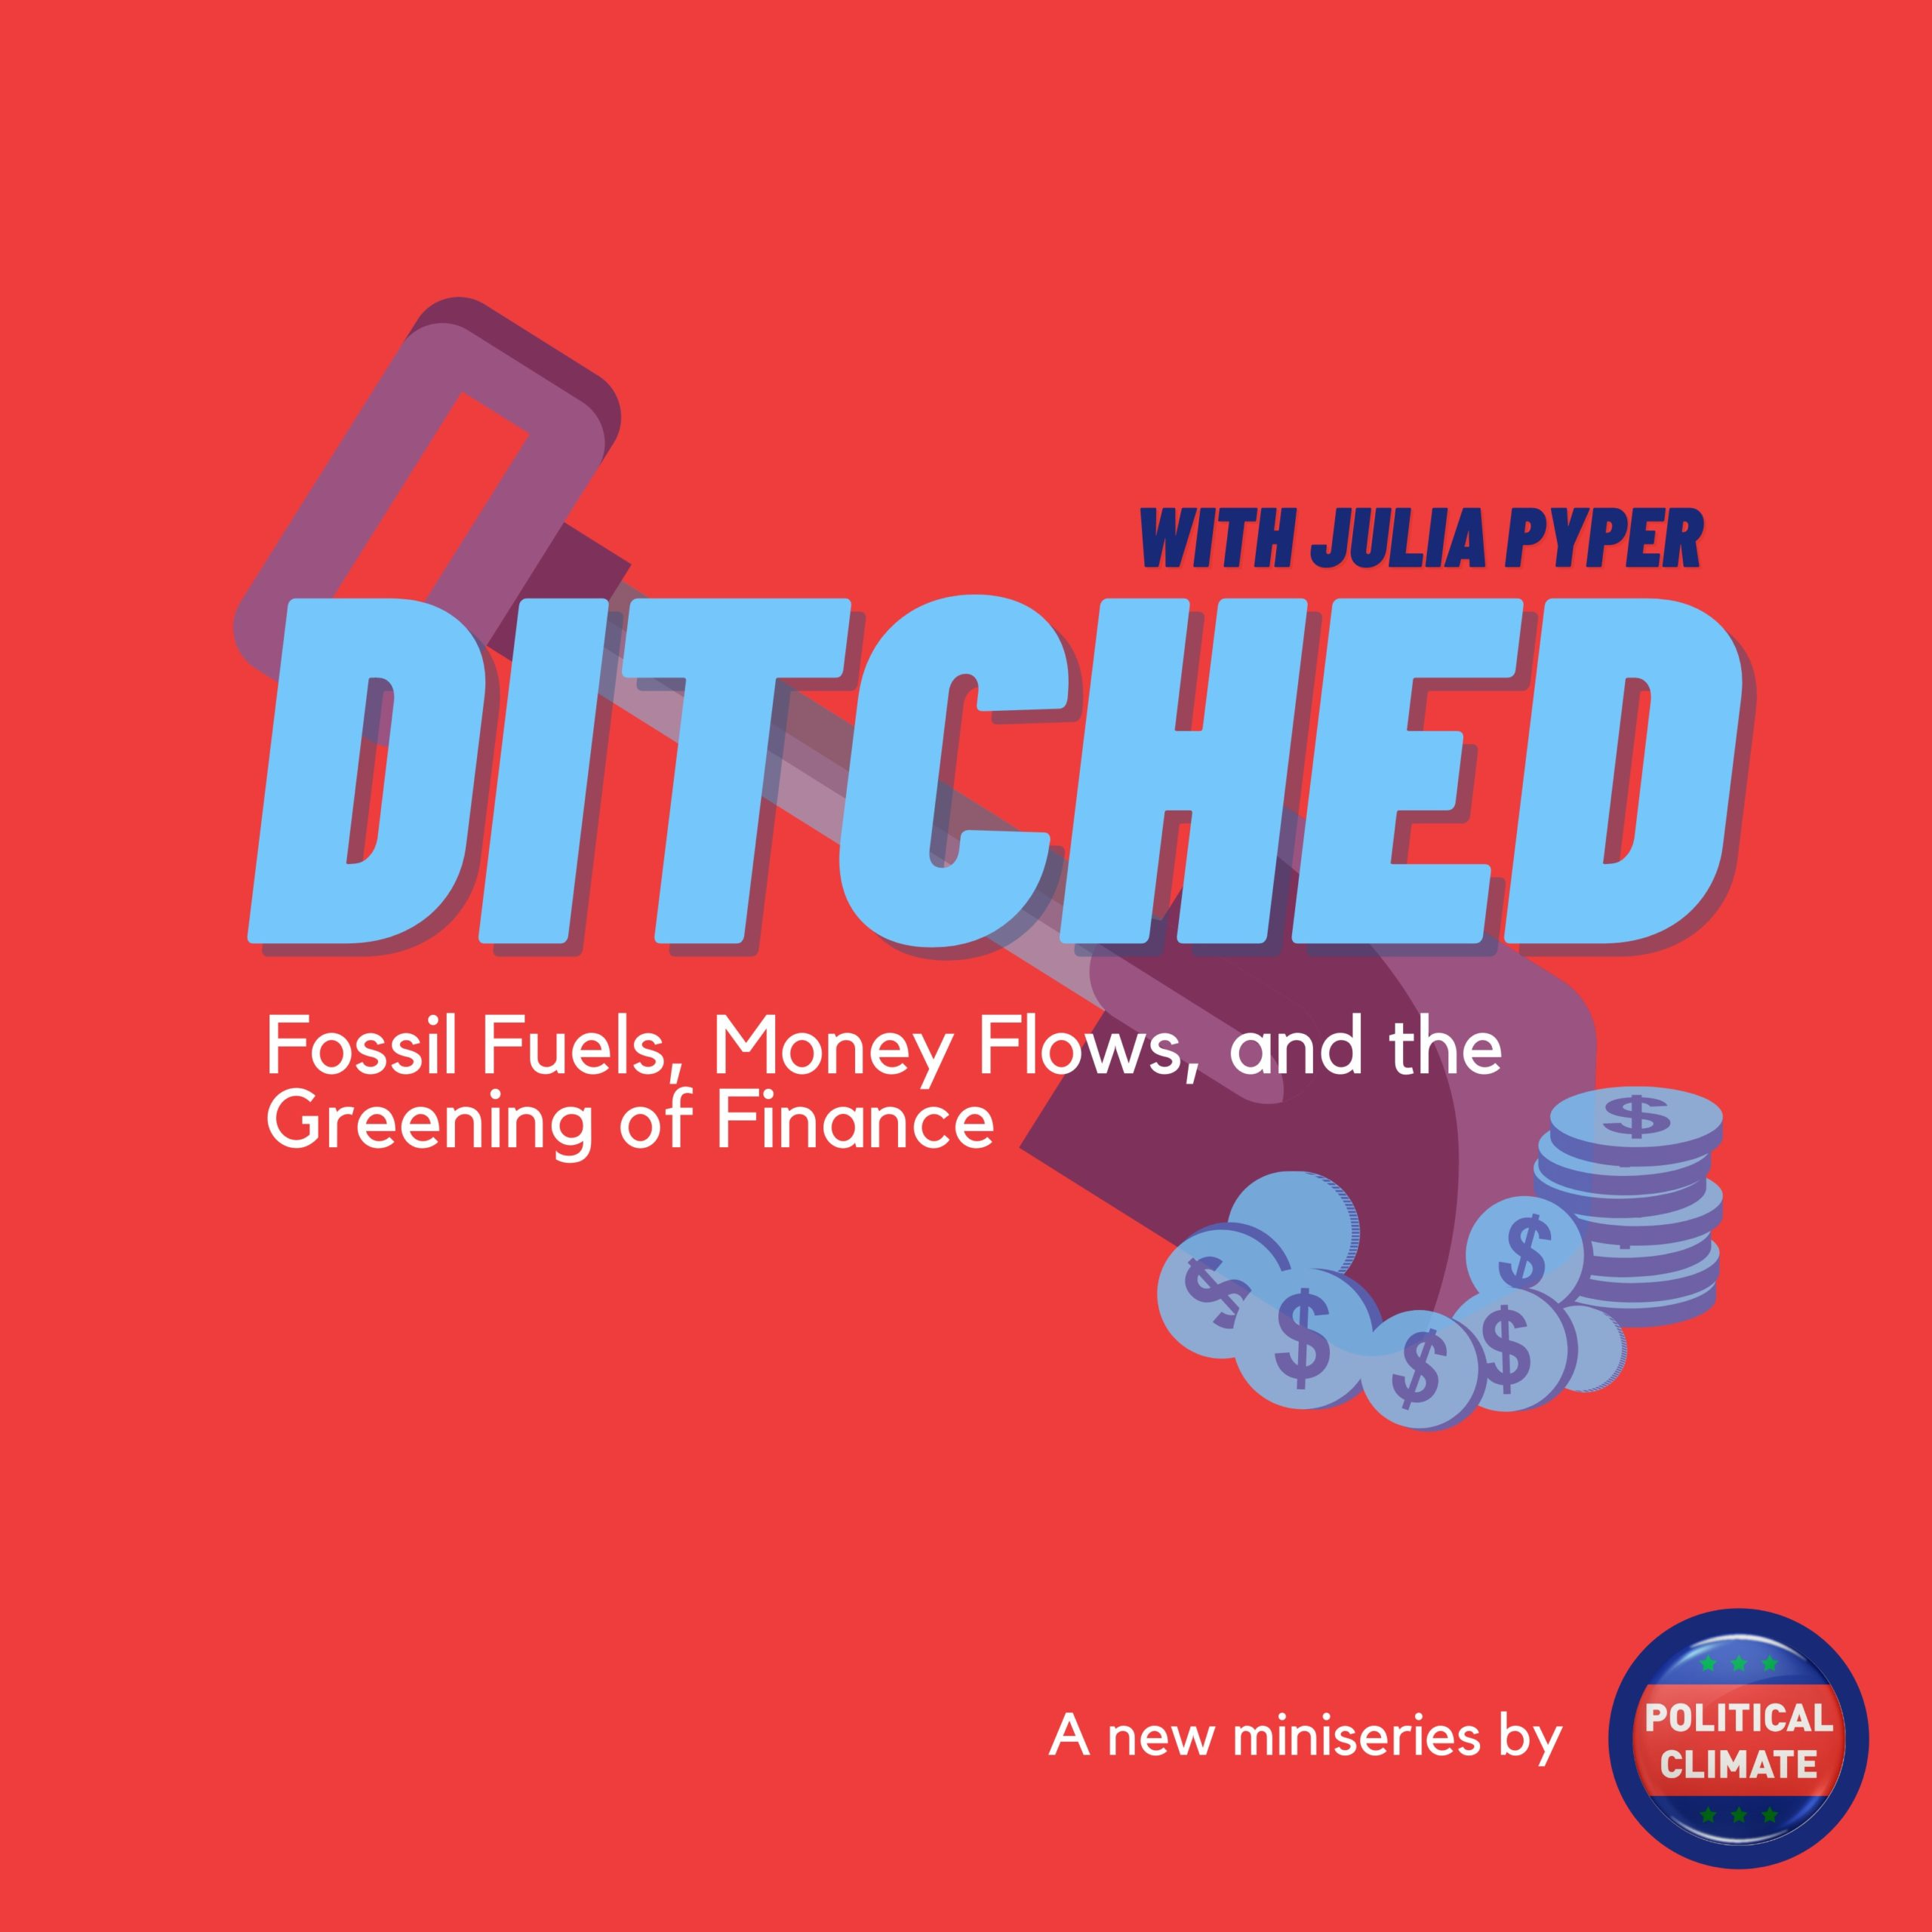 DITCHED: Fossil Fuels, Money Flows, and the Greening of Finance